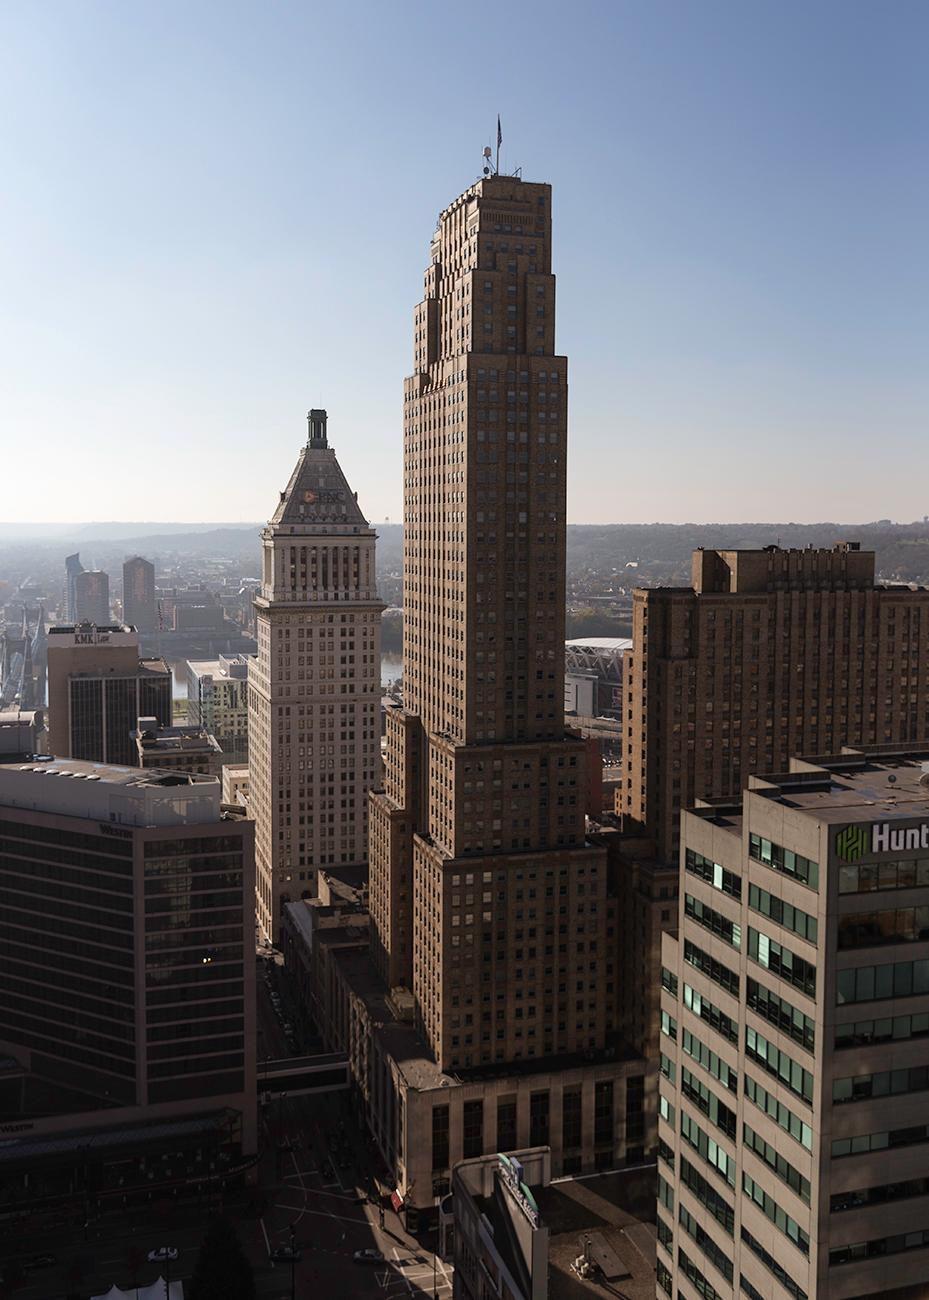 From 1930 to until 2011, the Carew Tower stood as the tallest building in Cincinnati. Located at 441 Vine Street, the Carew Tower has a height of 623 feet from the street to its tip (the flagpole). Many people appreciate how high the tower stands thanks to its public observation deck located on the 49th floor. So how does the Carew Tower stack up to world icons and landmarks? Let's find out. / Image: Phil Armstrong // Published: 5.15.19